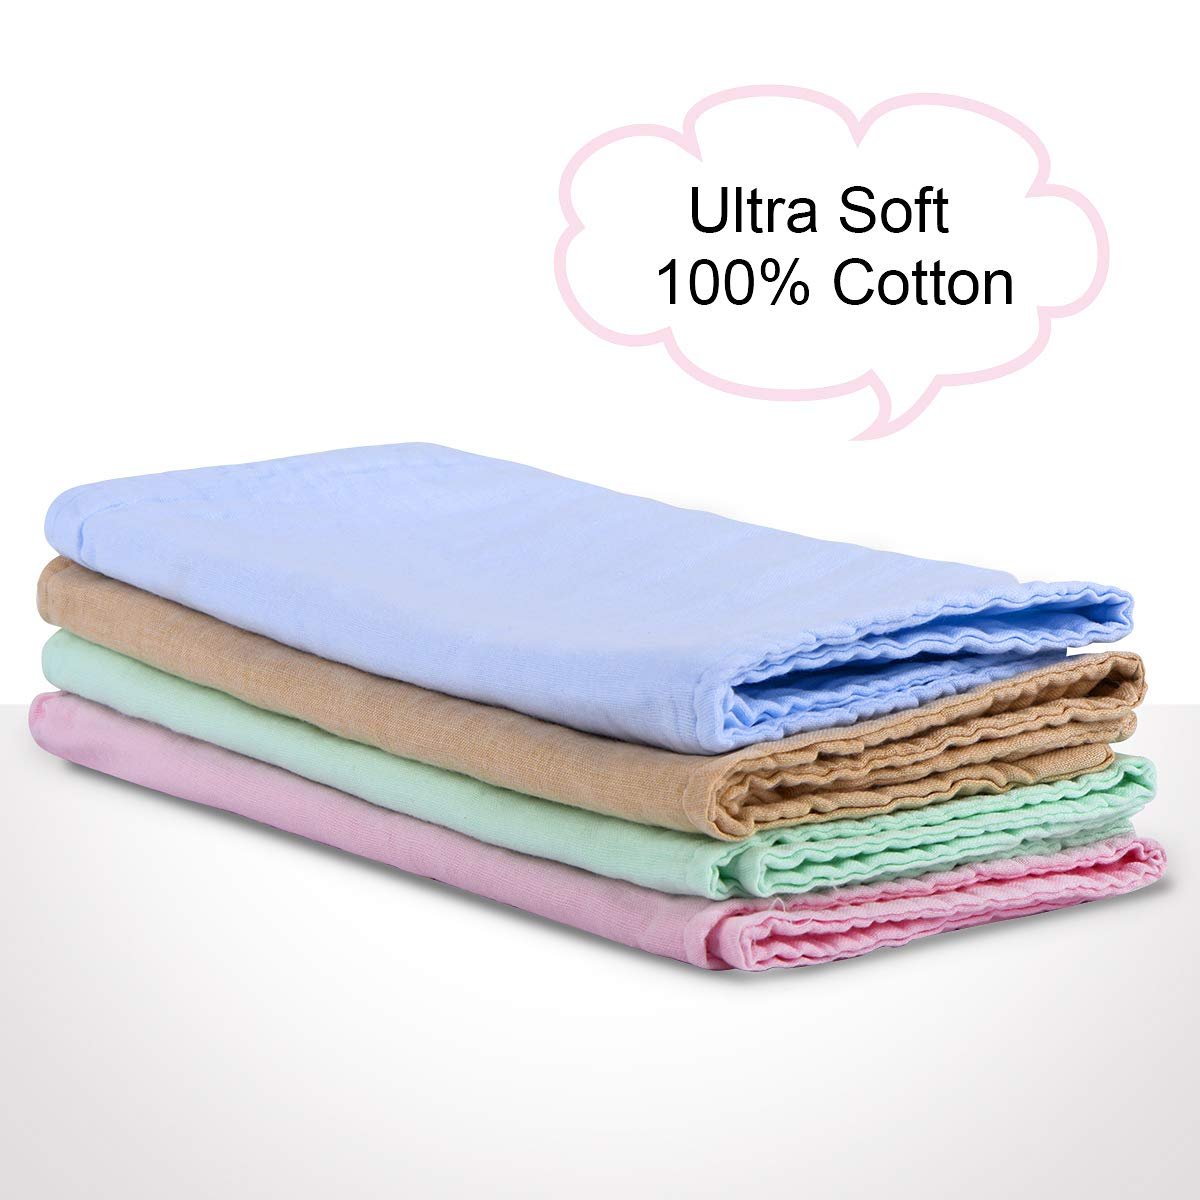 SkyBlue 100/% Cotton Triple Layer Extra Soft /& Absorbent Multi-Use/Infant Burping Towels Burp Cloths for Baby Boy Girl/for Newborns